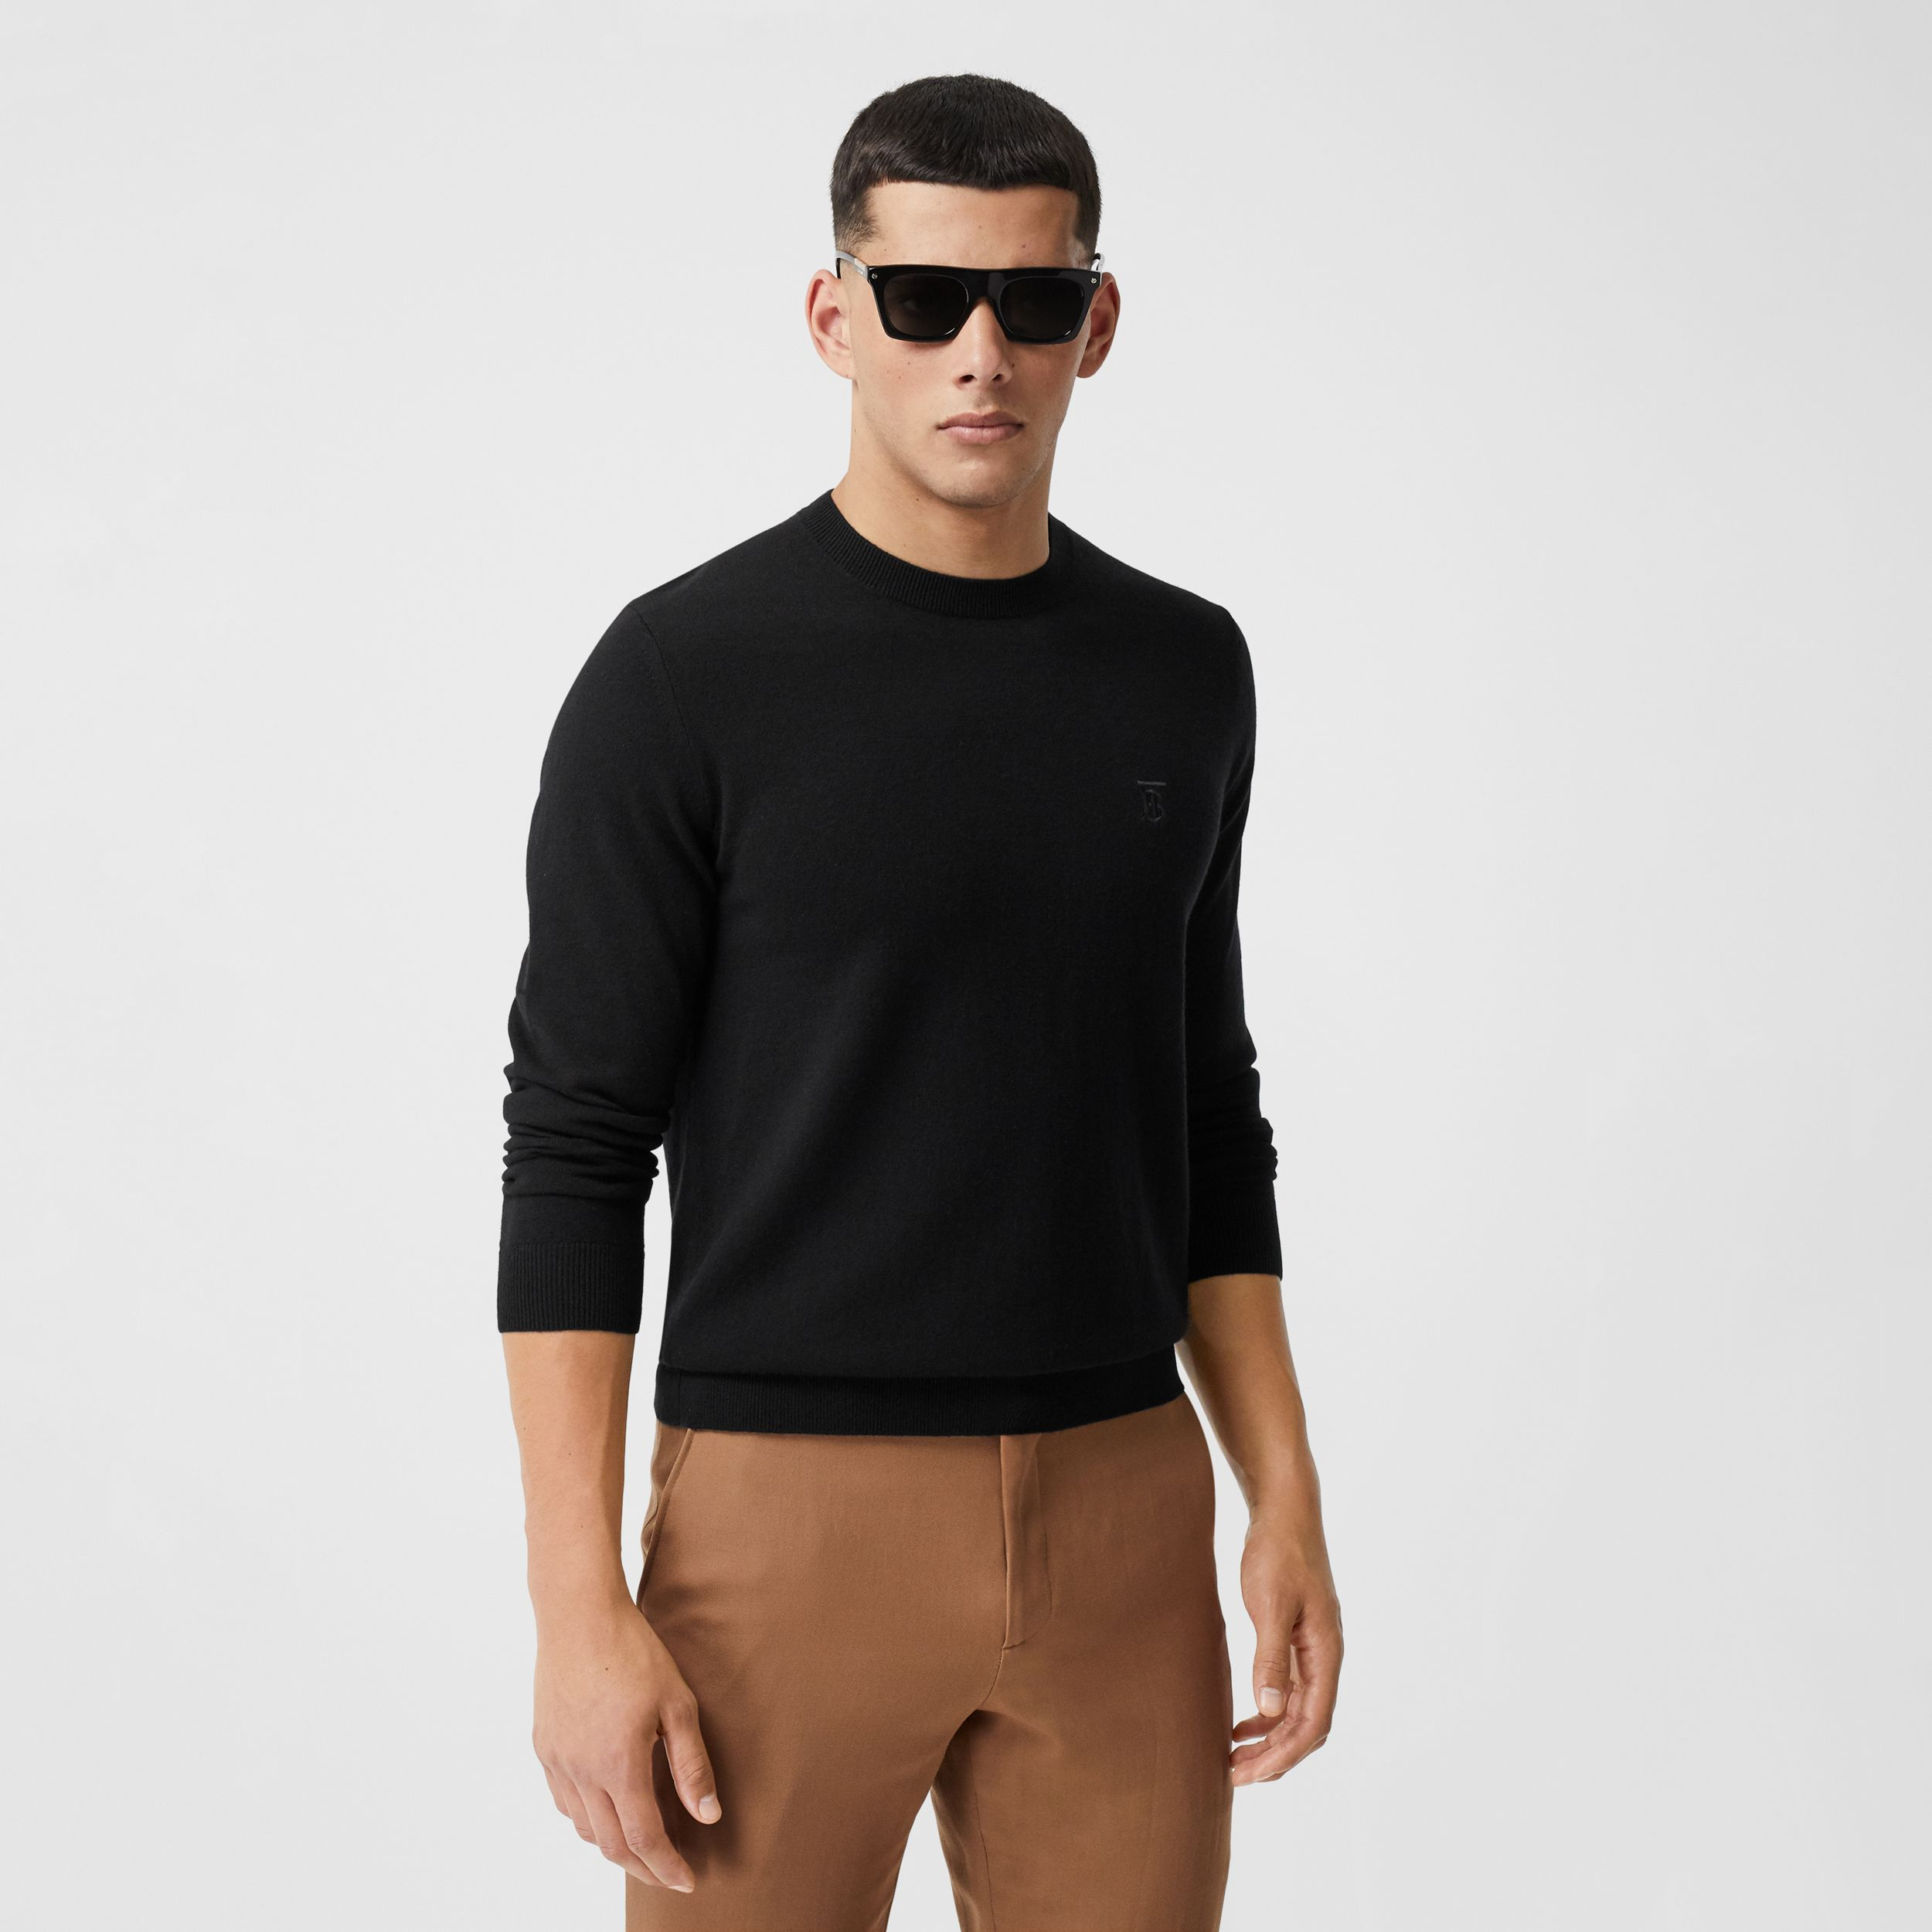 Monogram Motif Cashmere Sweater in Black - Men | Burberry Australia - 1